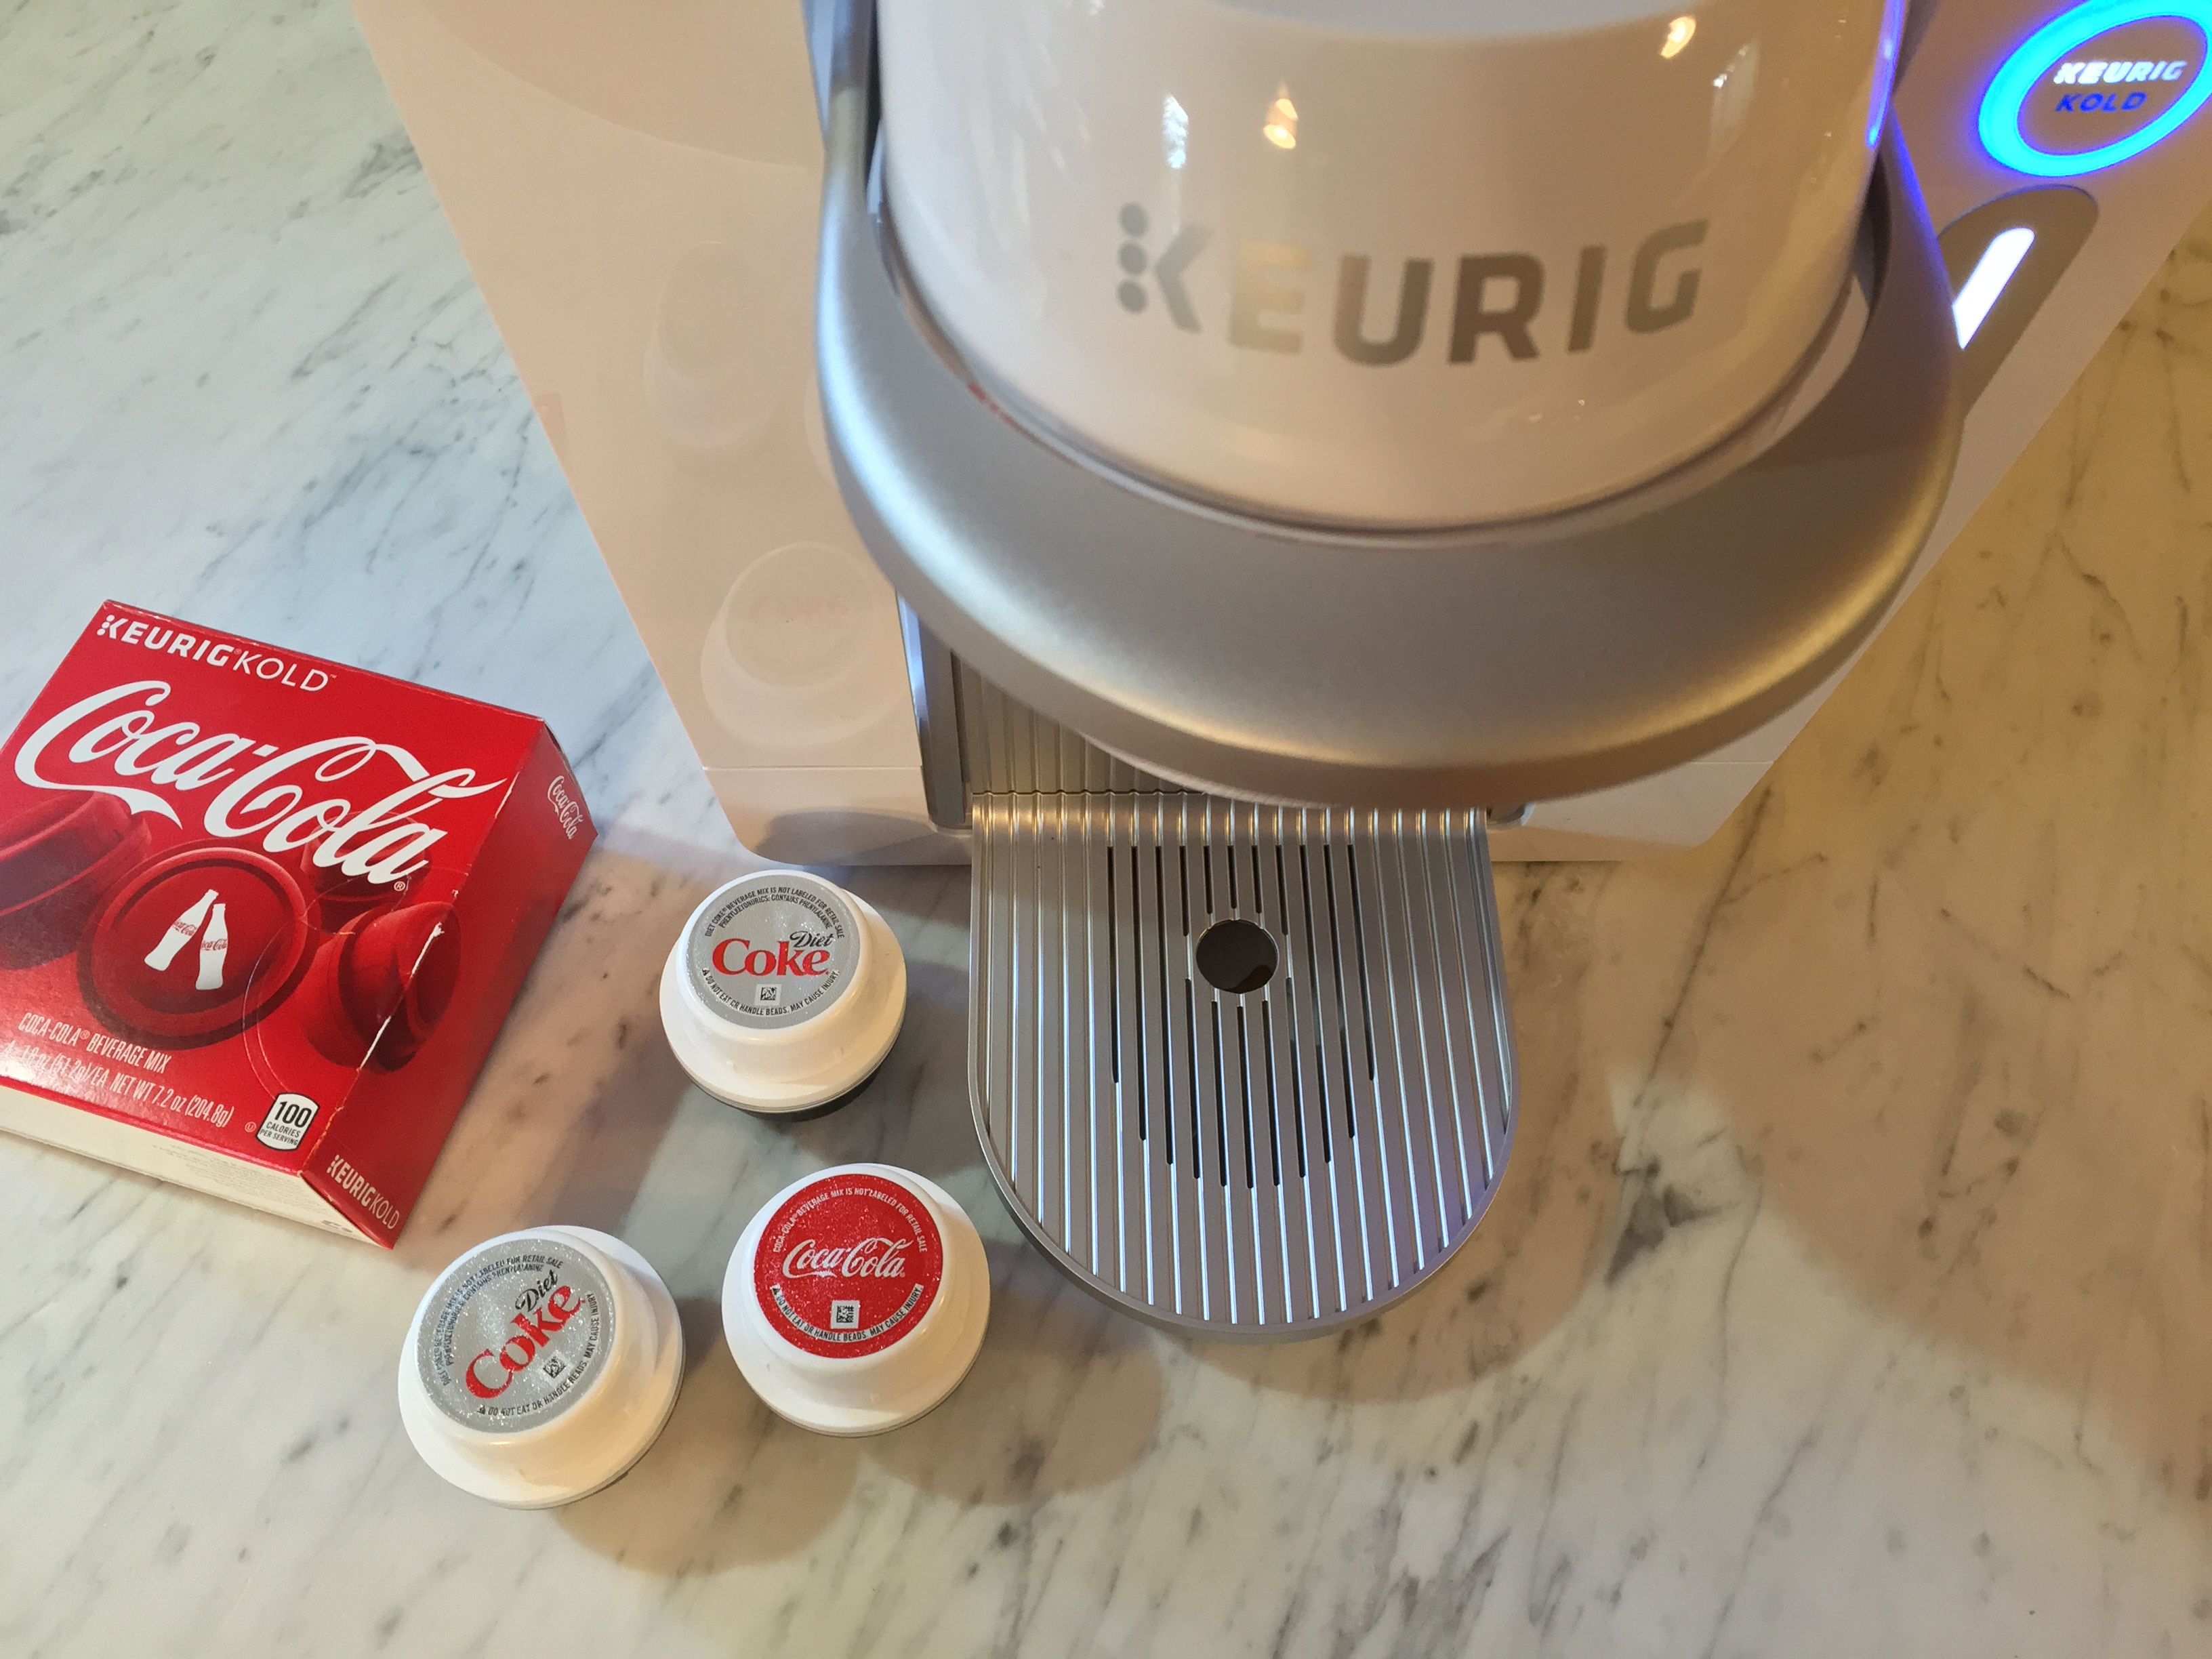 NEW Keurig Kold Makes Coke